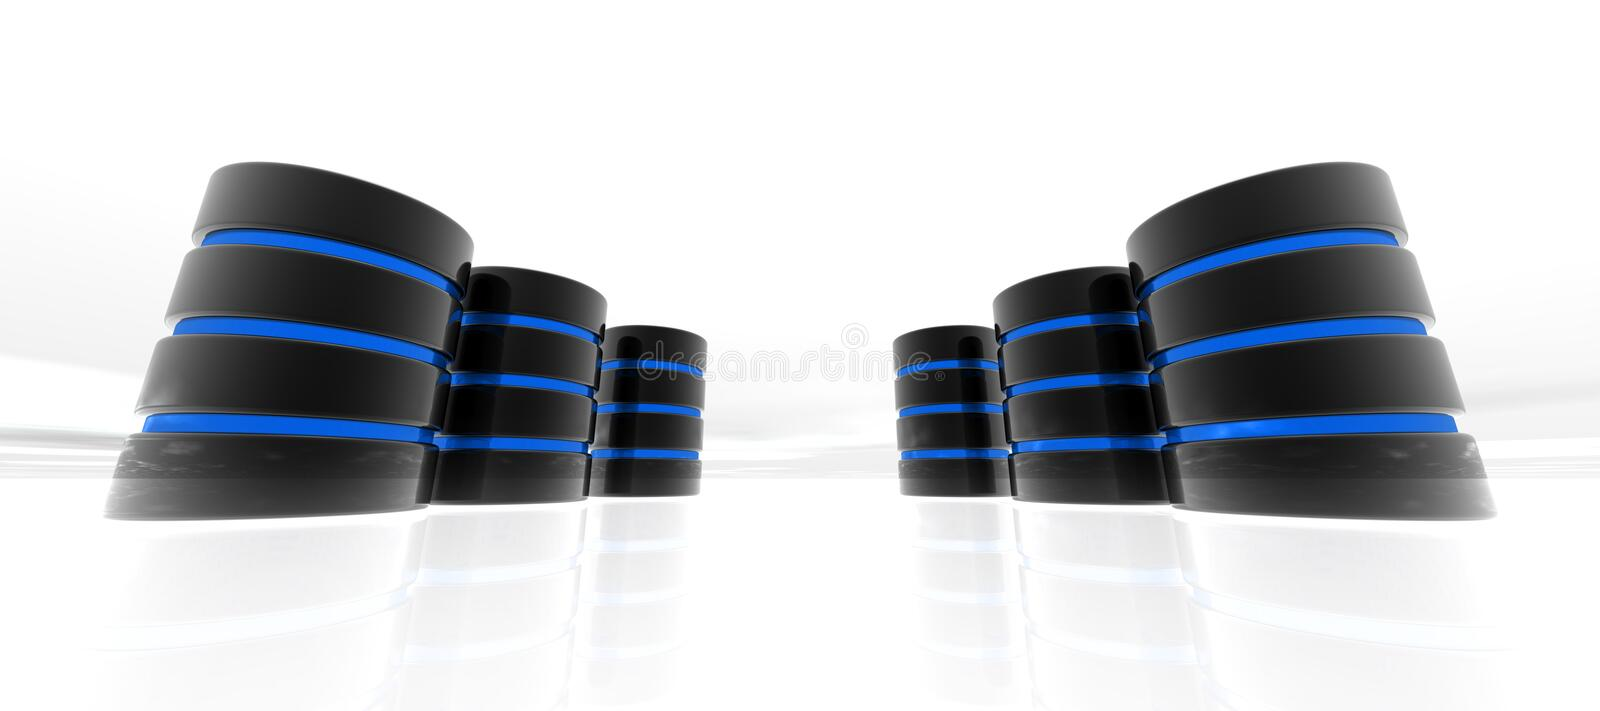 Download Blue Database In Perspective Royalty Free Stock Image - Image: 26481946